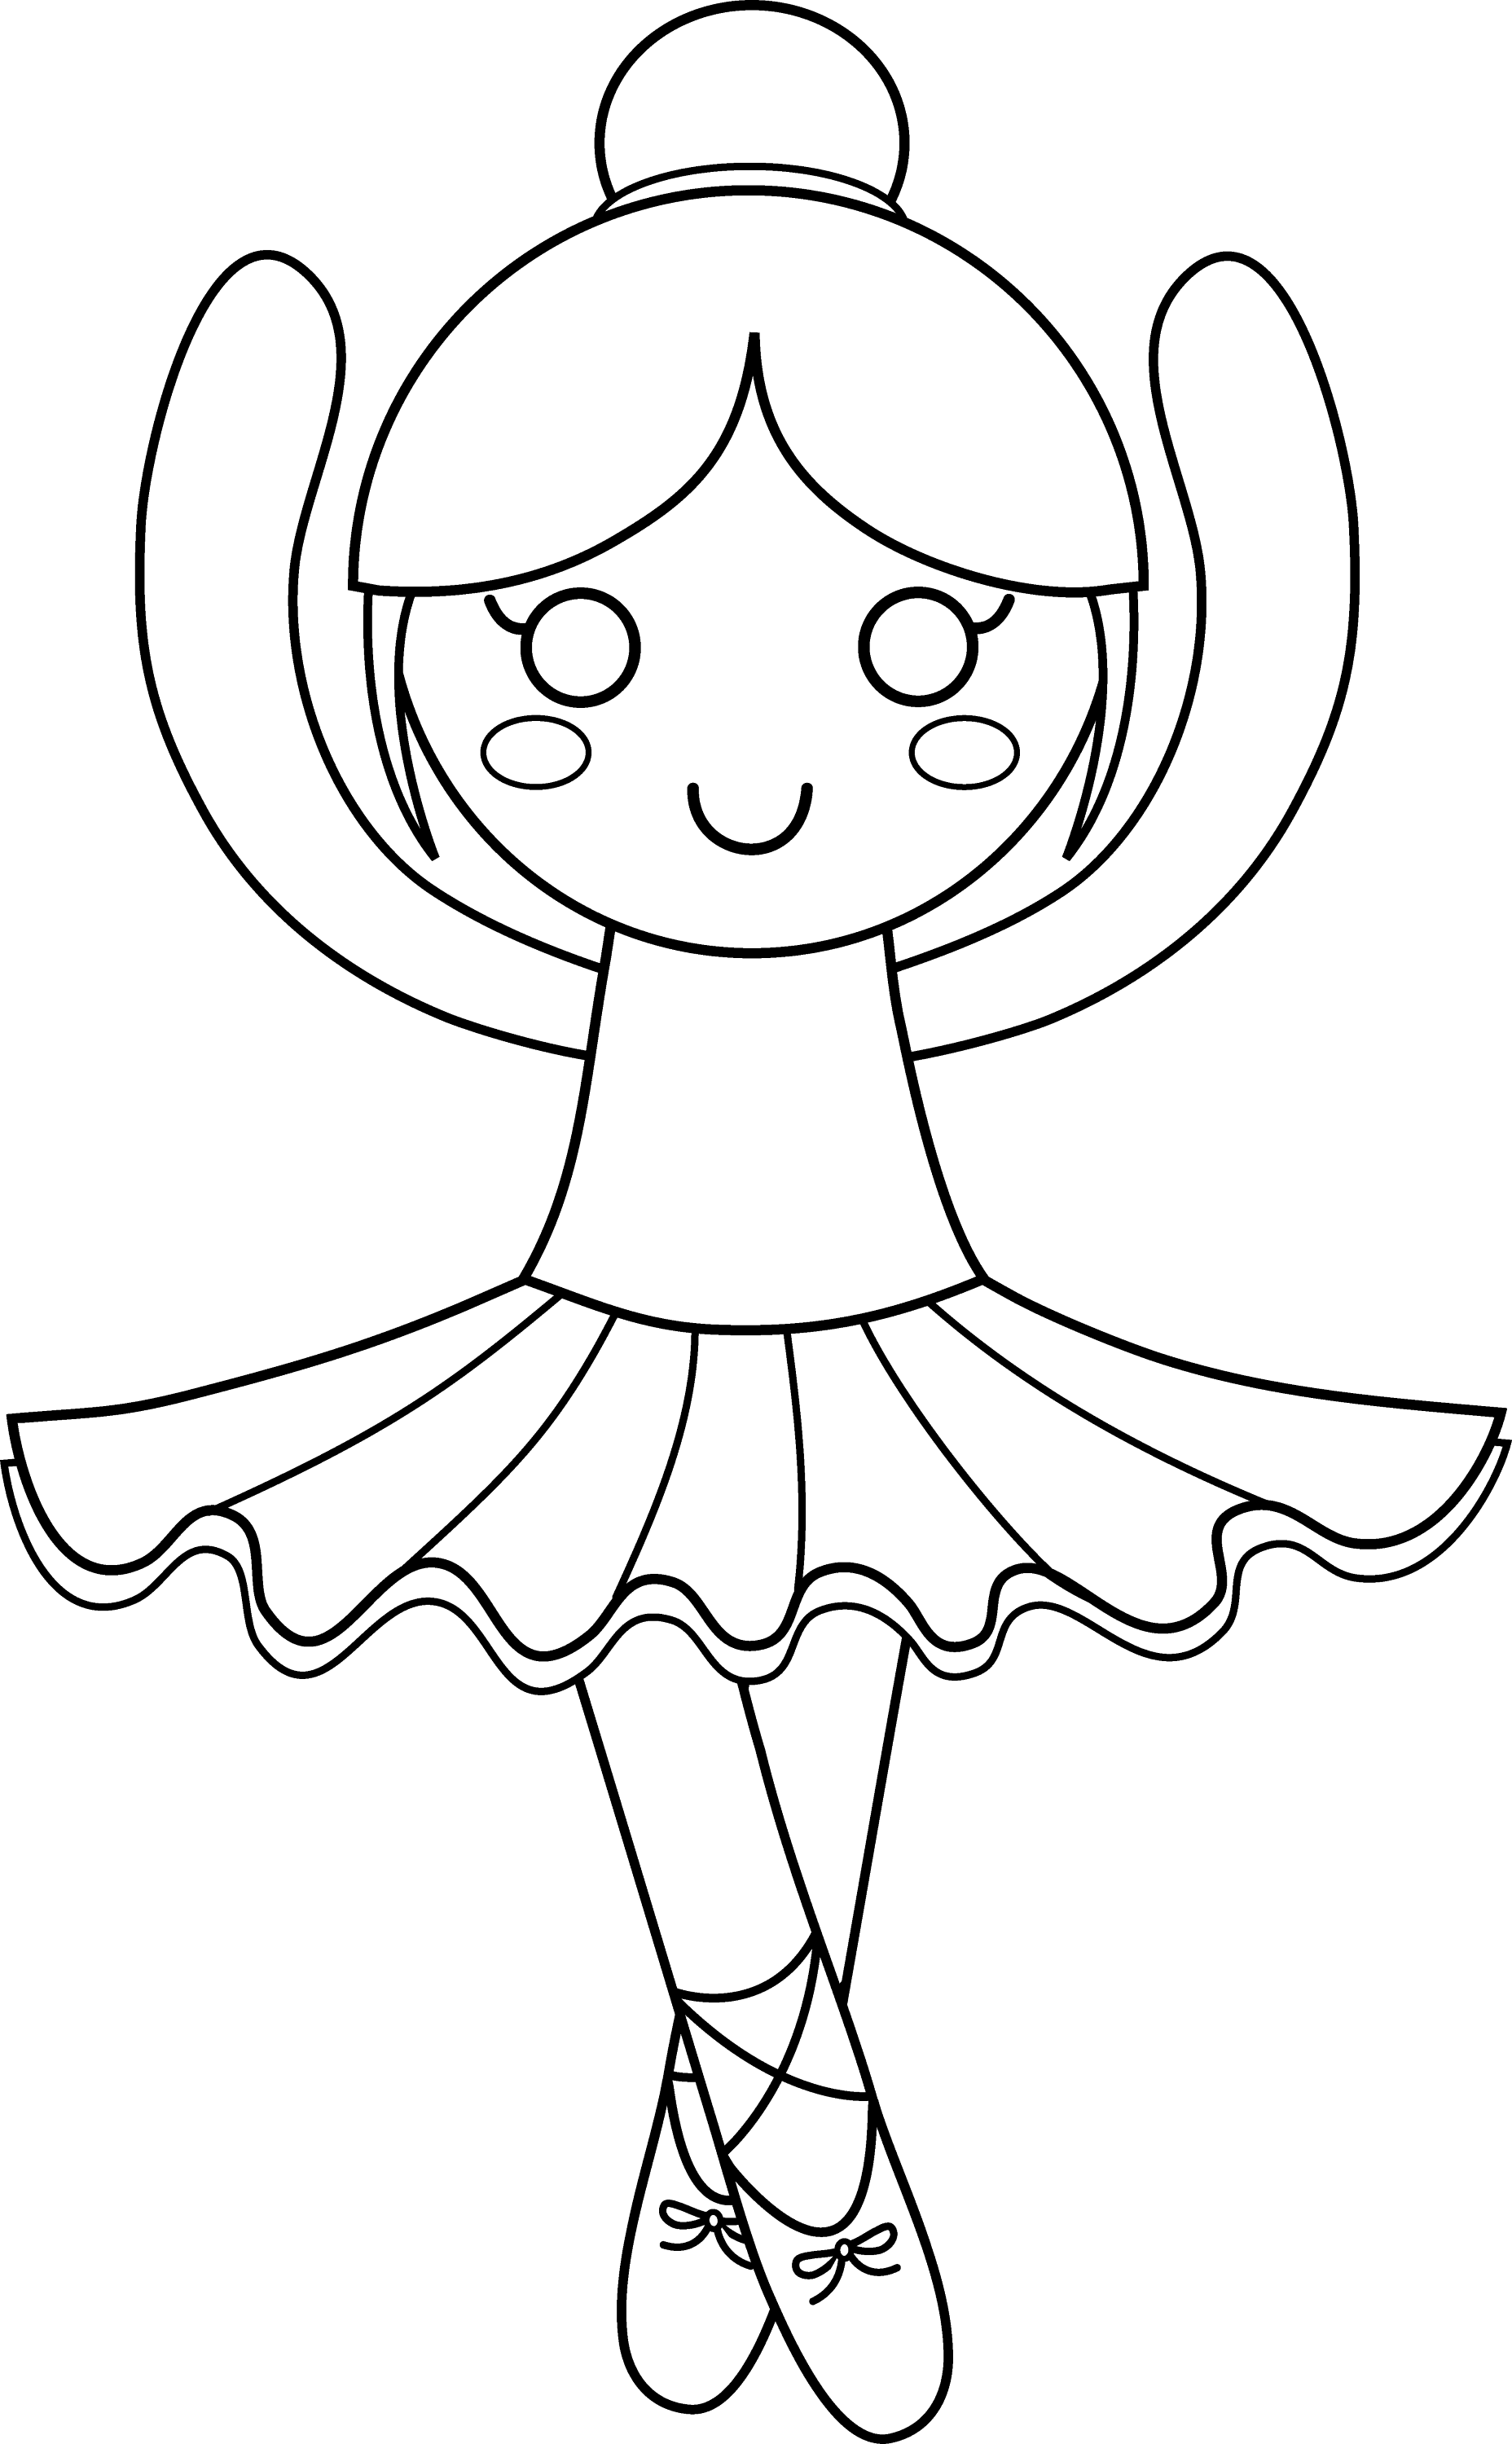 ballet coloring pages printable free printable ballerina coloring pages at getdrawings pages coloring printable ballet